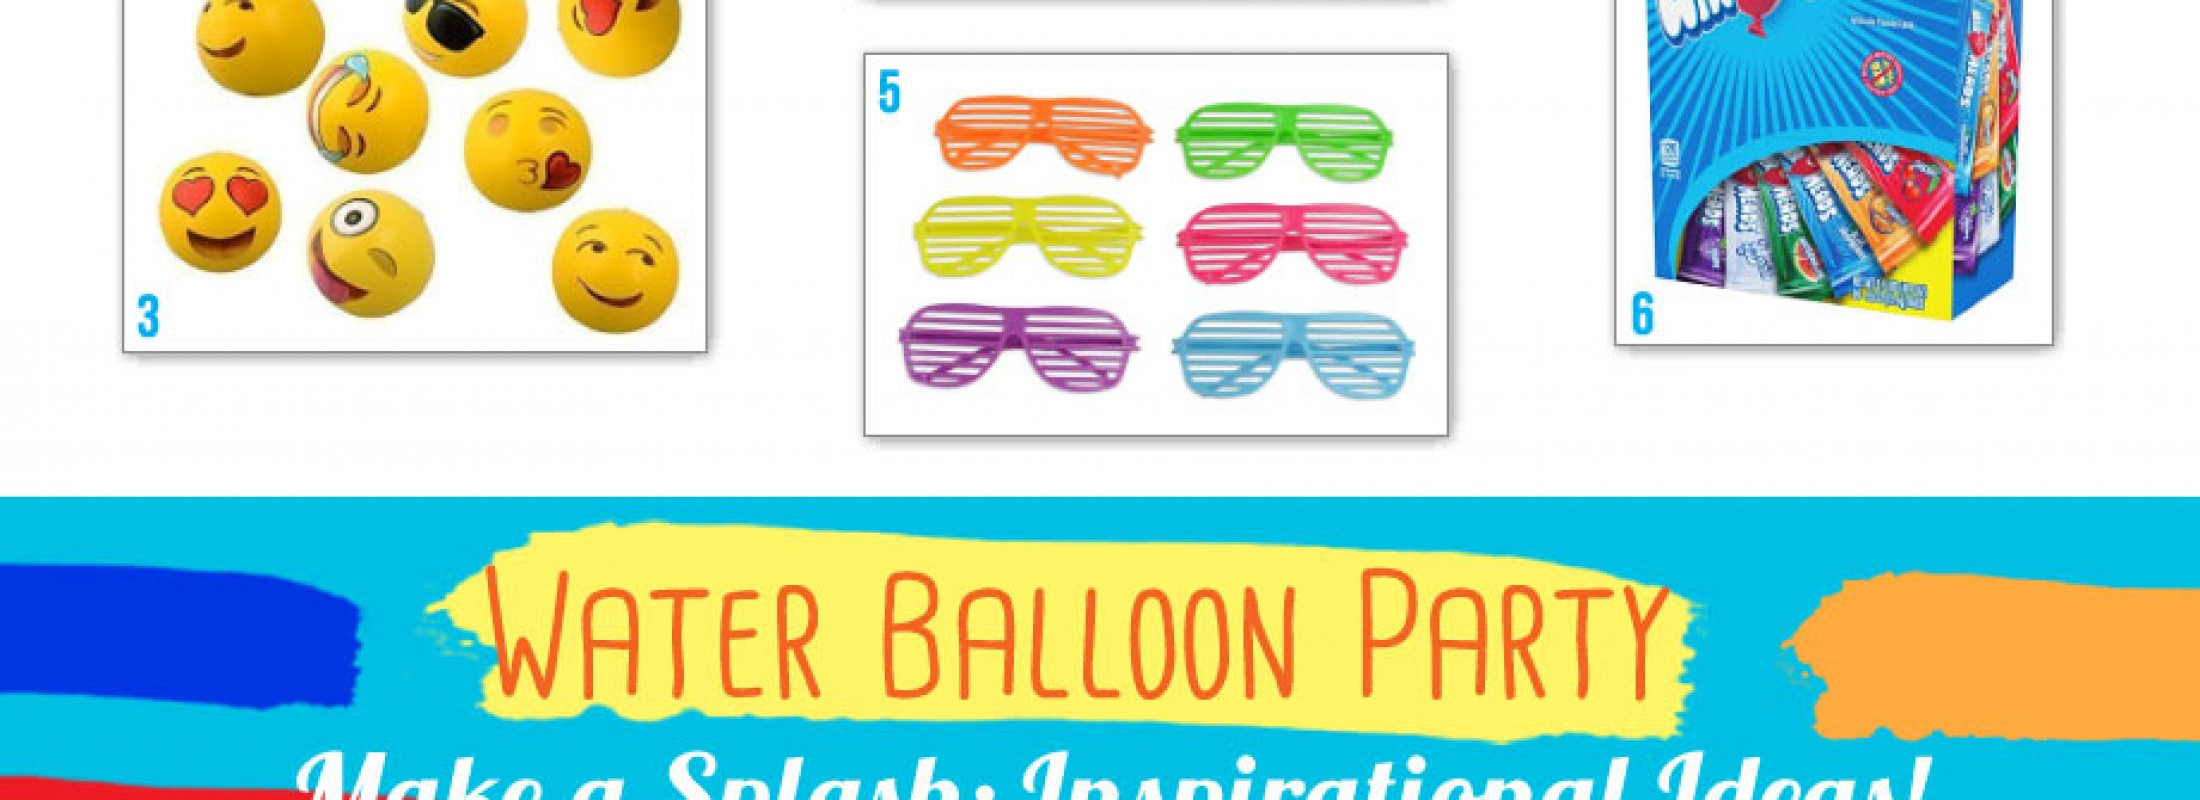 Water Balloon Birthday Party